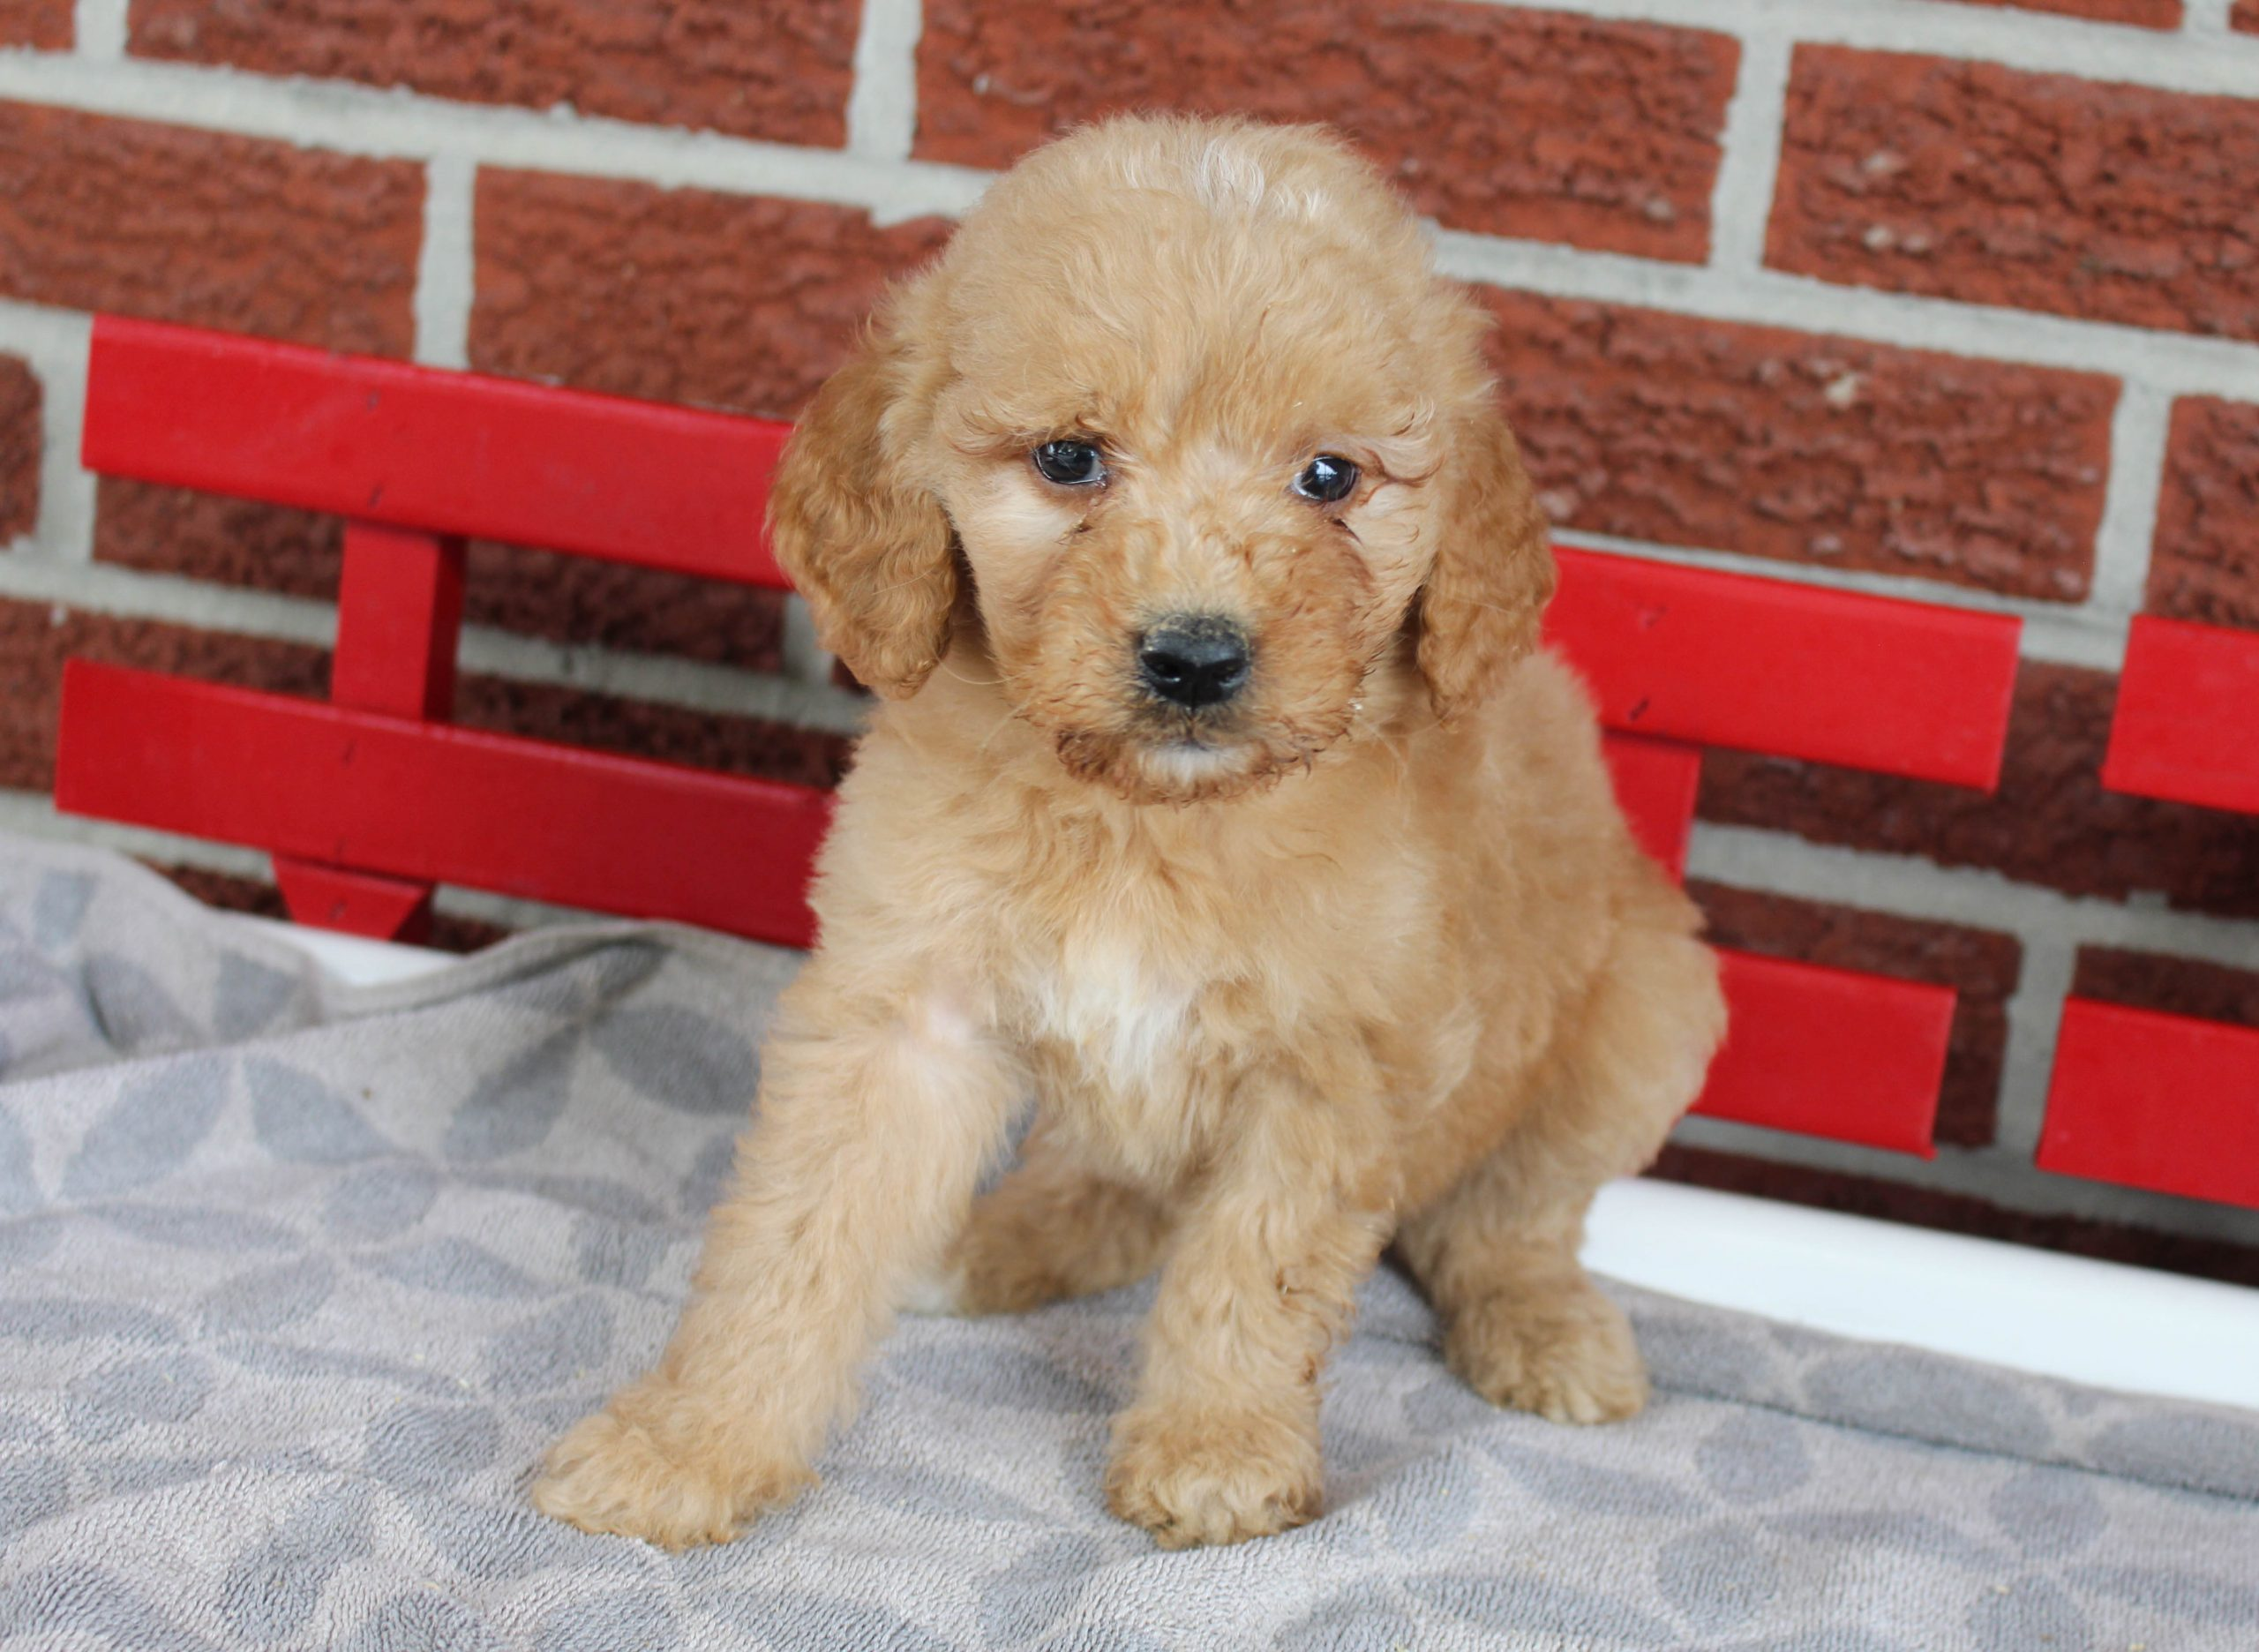 Presley - F1 Goldendoodle female doggie for sale in Grabill, Indiana